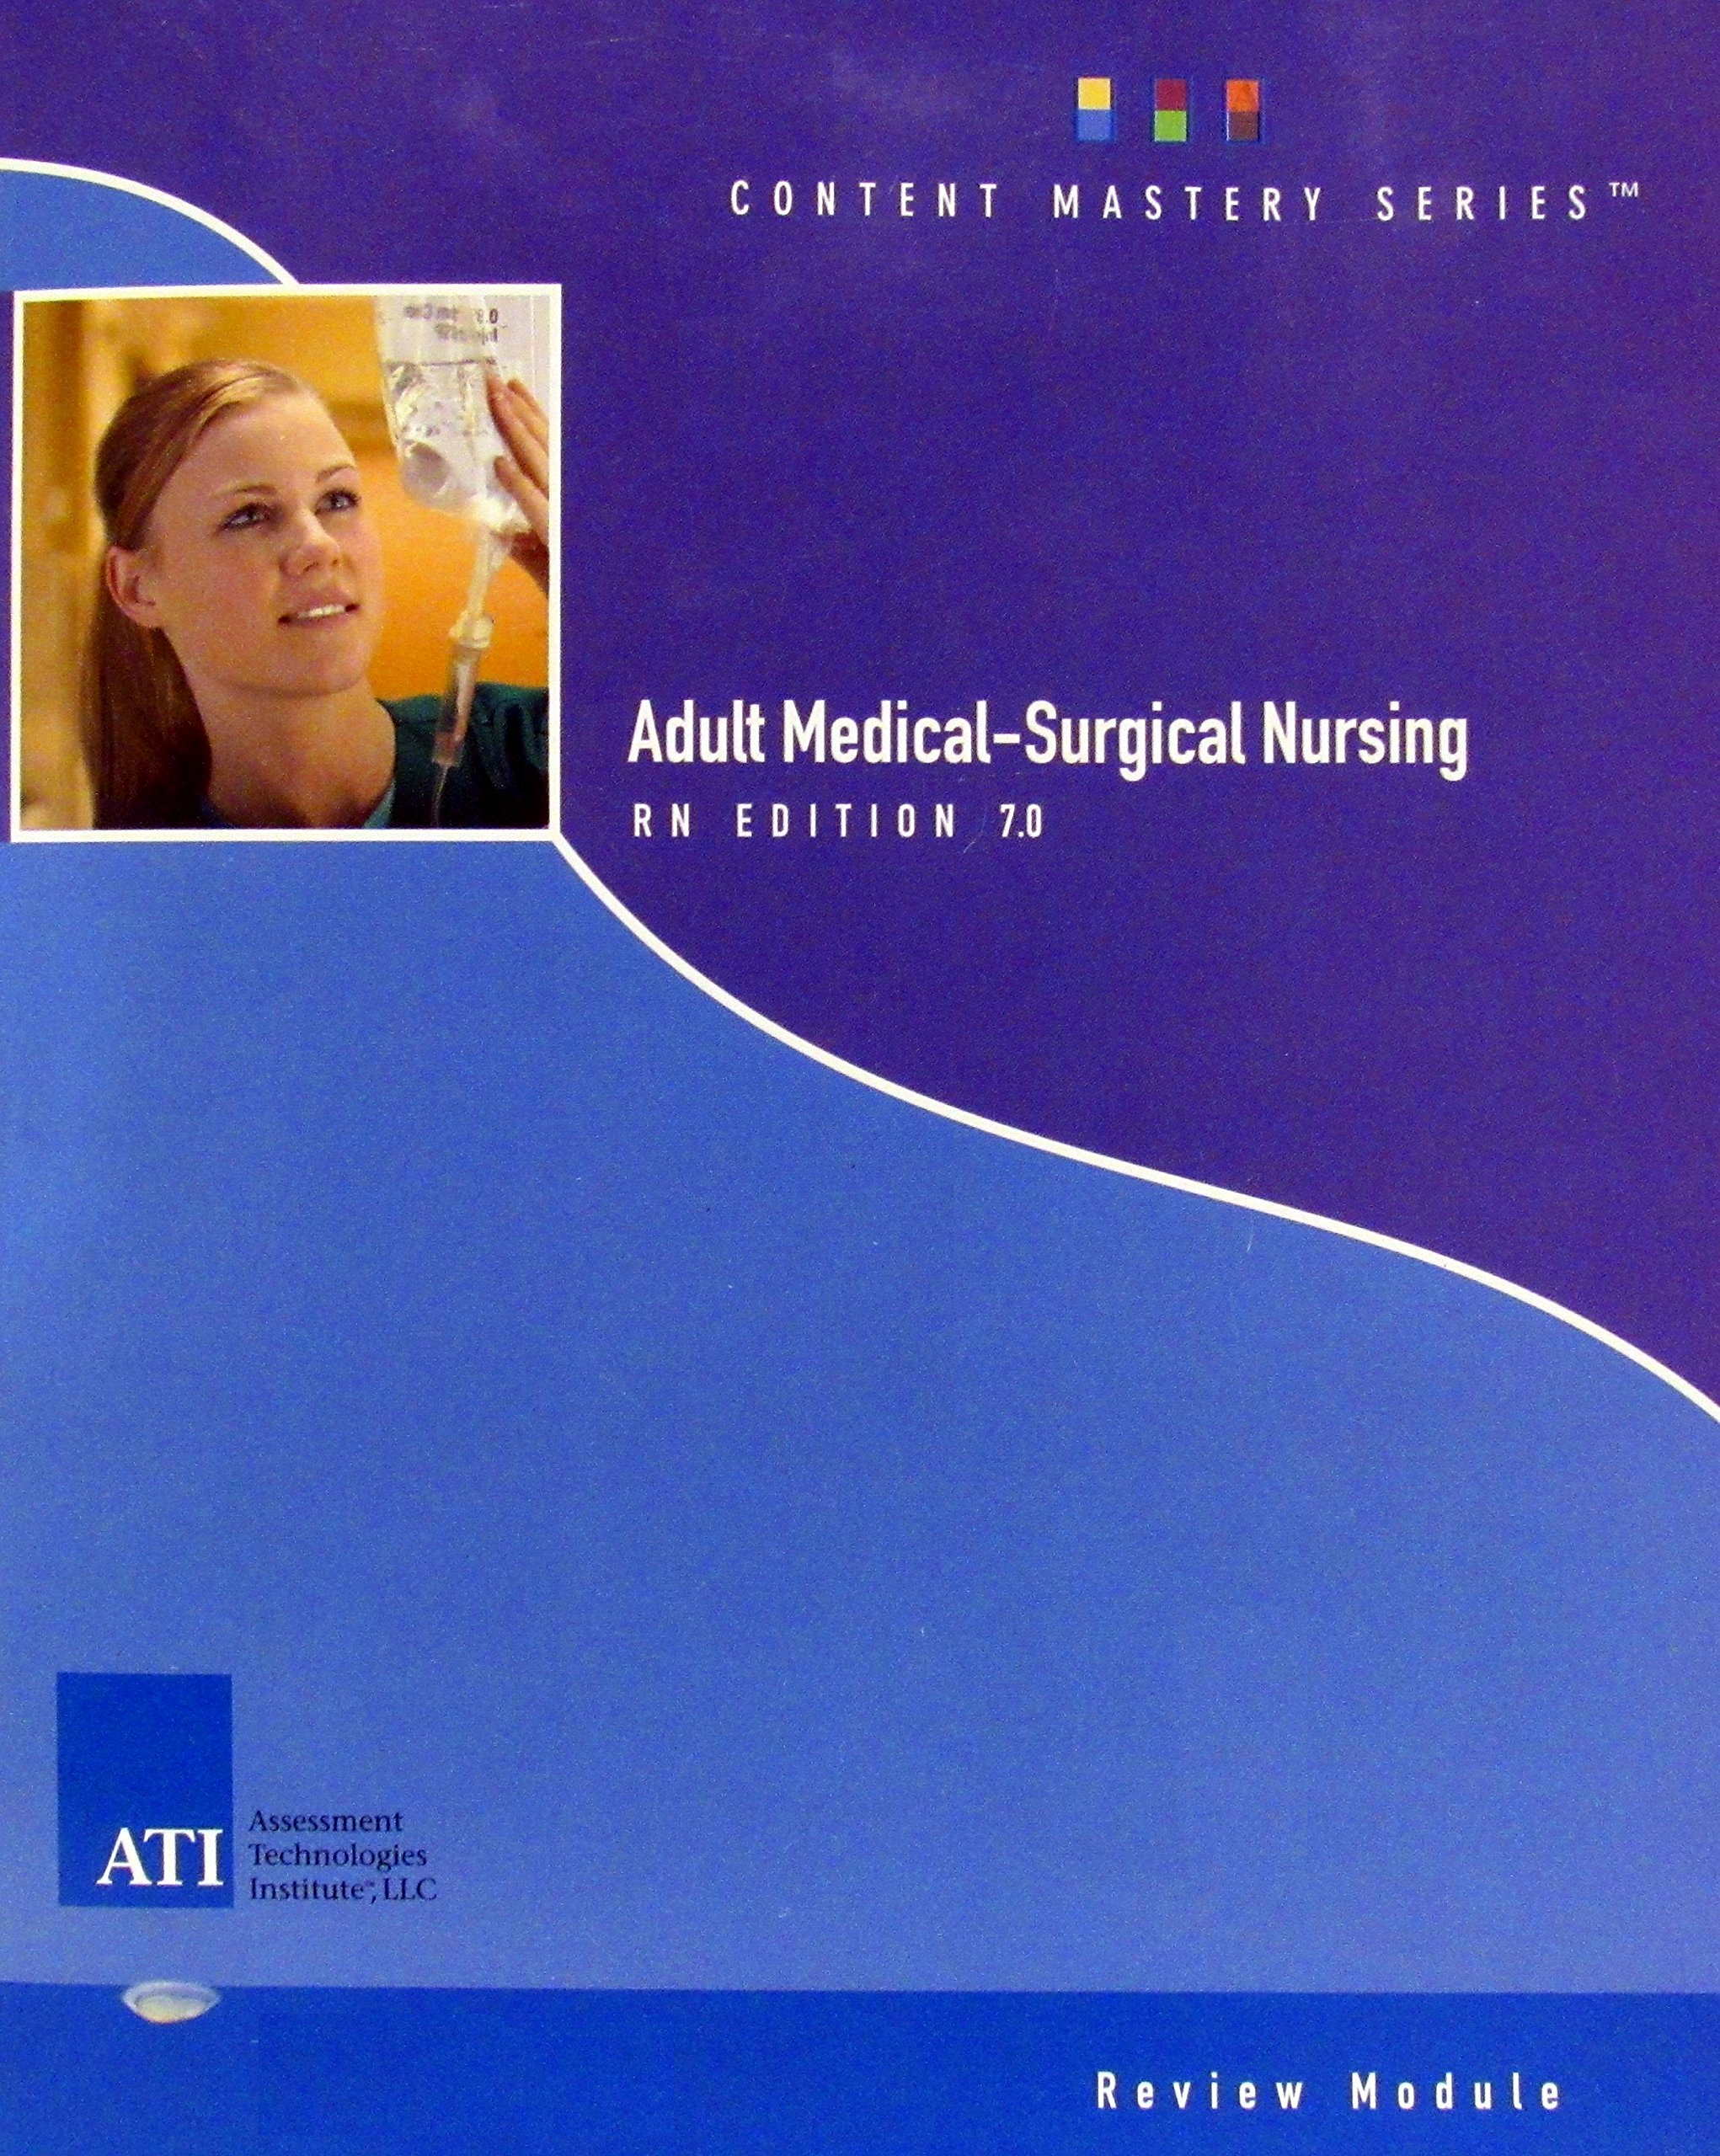 Adult Medical-Surgical Nursing. ATI. RN edition 7.0. Review Module. NCLEX-RN. pdf epub